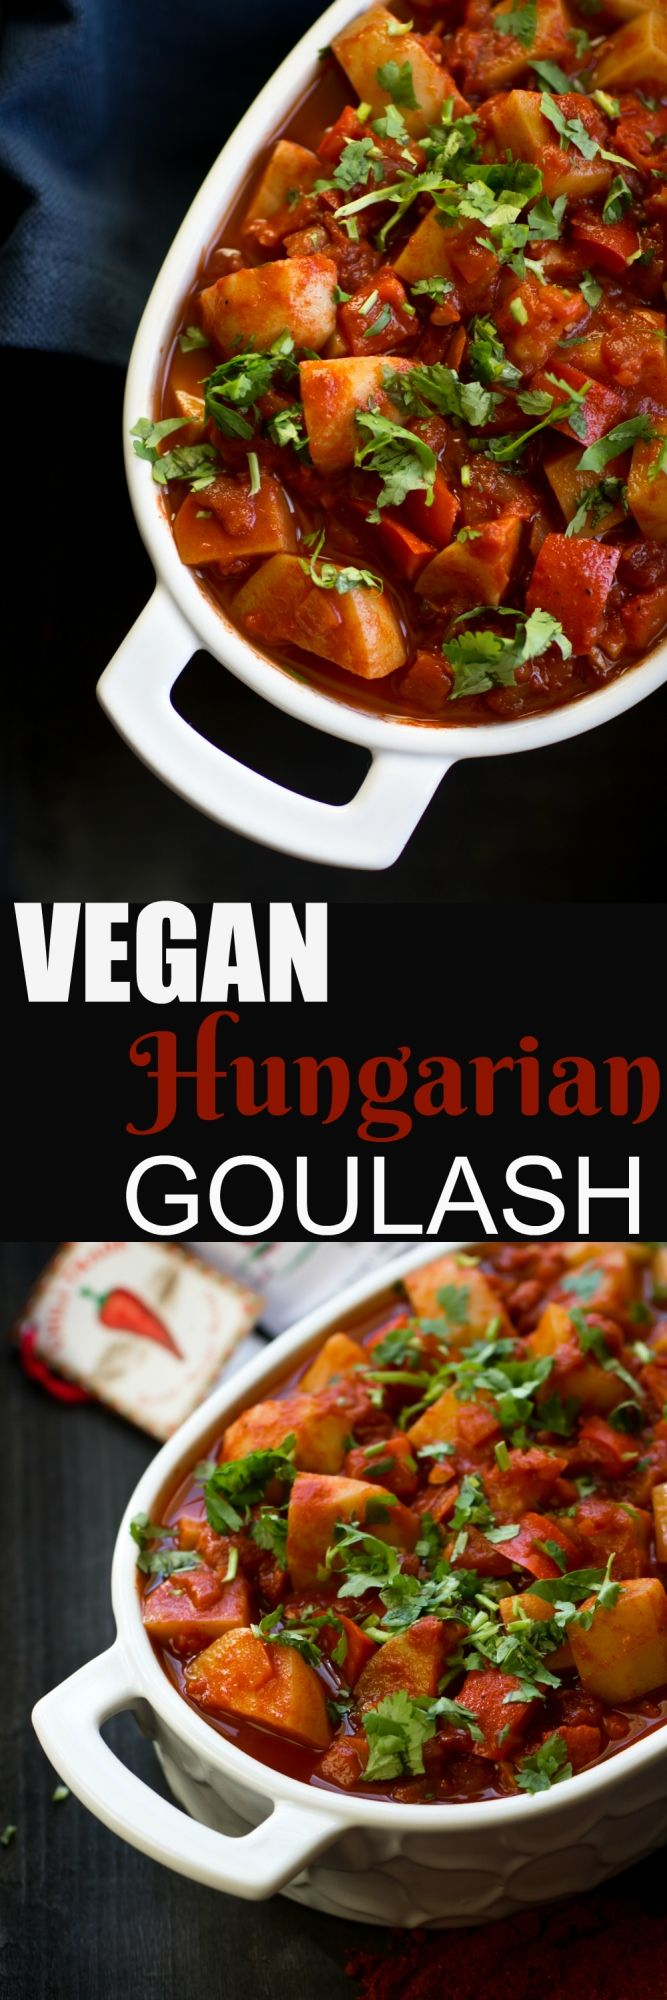 This Vegan Hungarian Goulash is similar to traditional, but with a vegan twist. This is a meatless goulash, but I promise you won't miss it. It is hearty, savory and with a touch of red wine to give it a truly delicious deep flavor. via @thevegan8